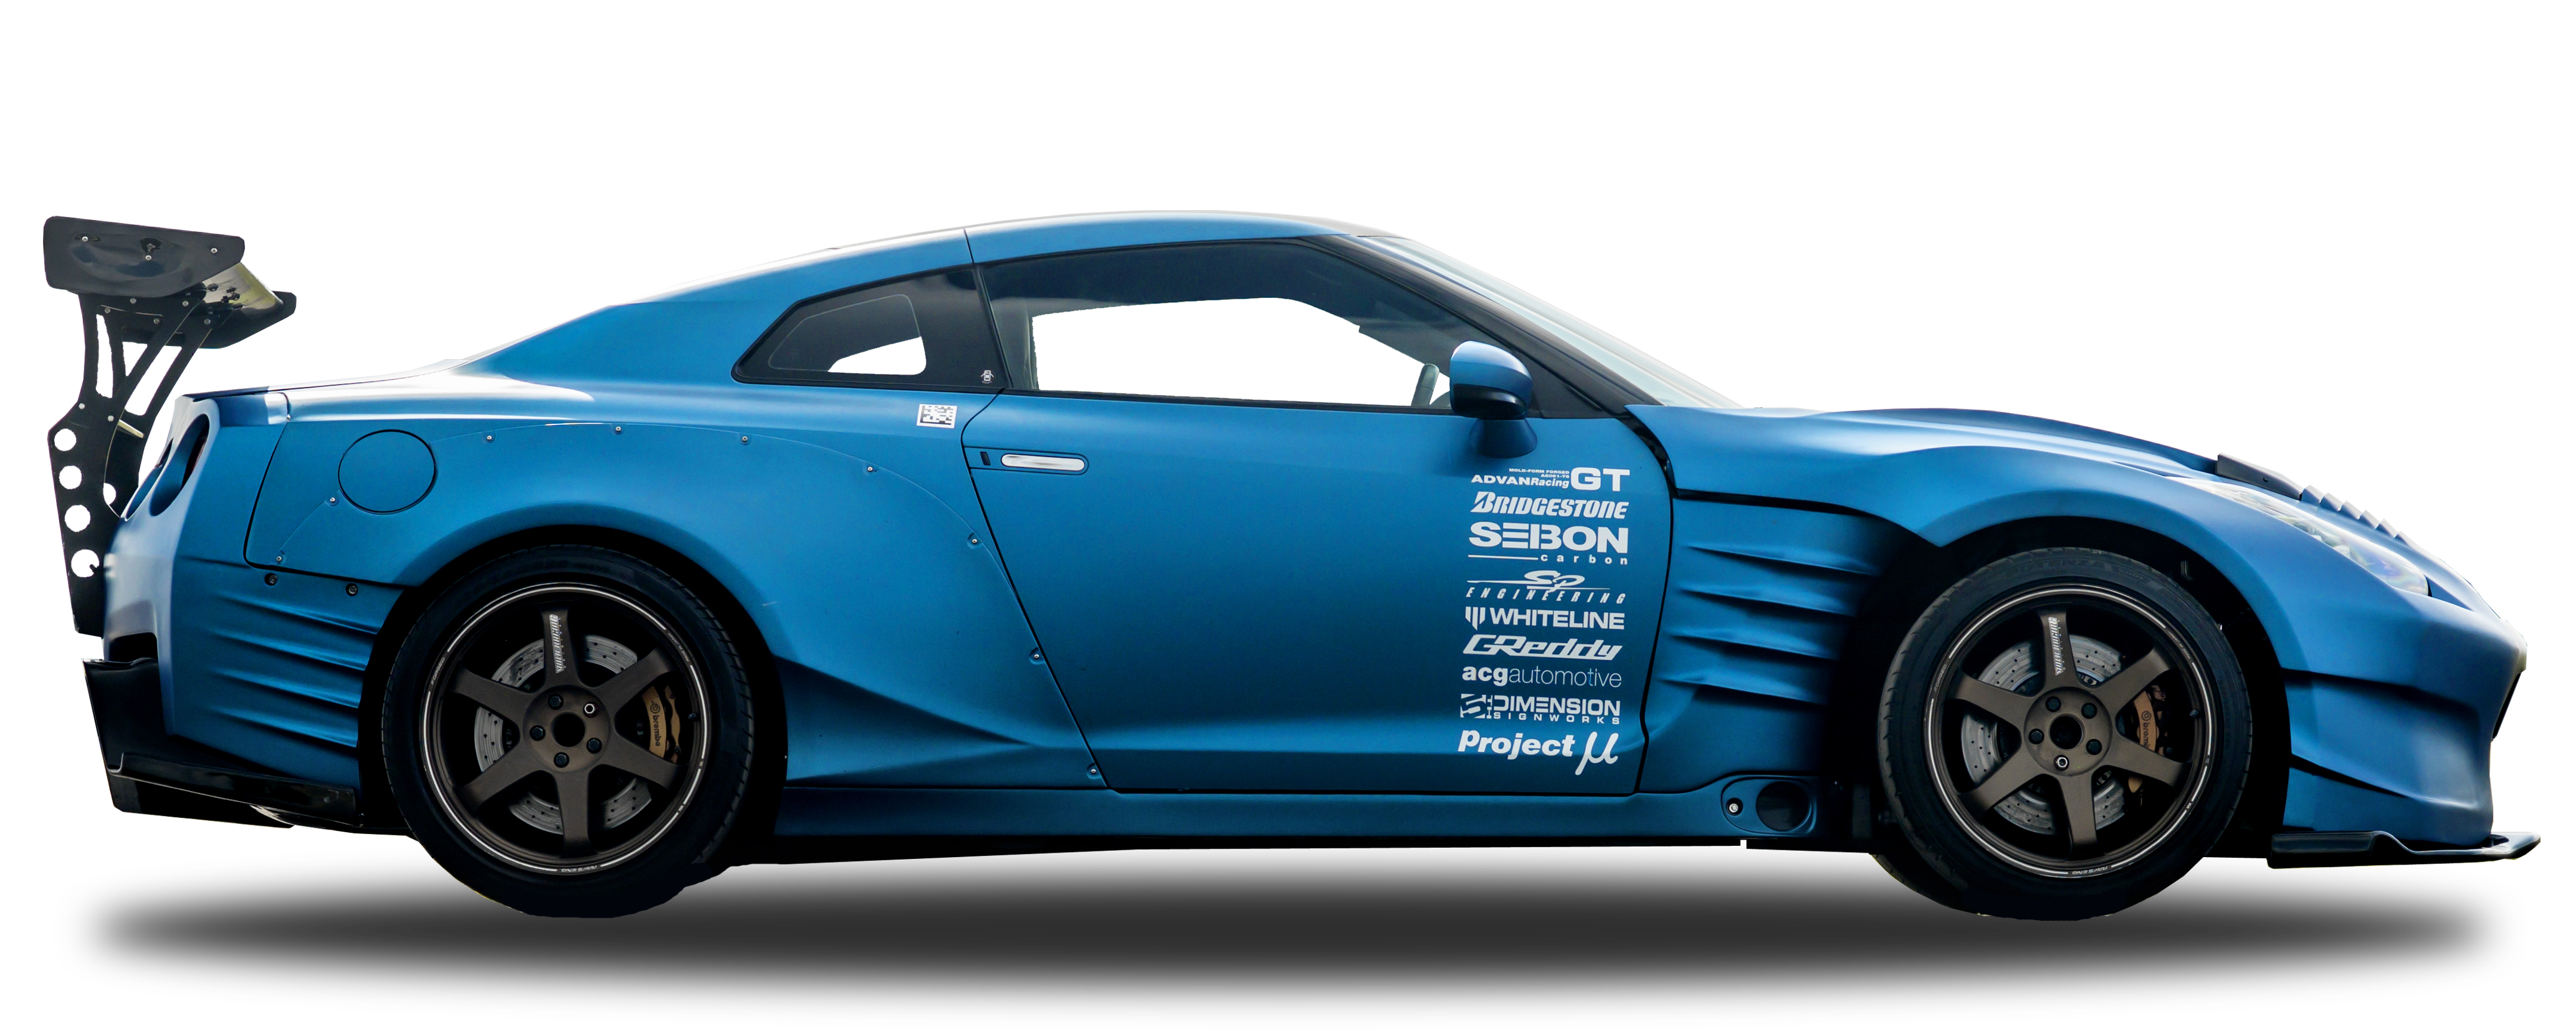 Fast and Furious GTR Image